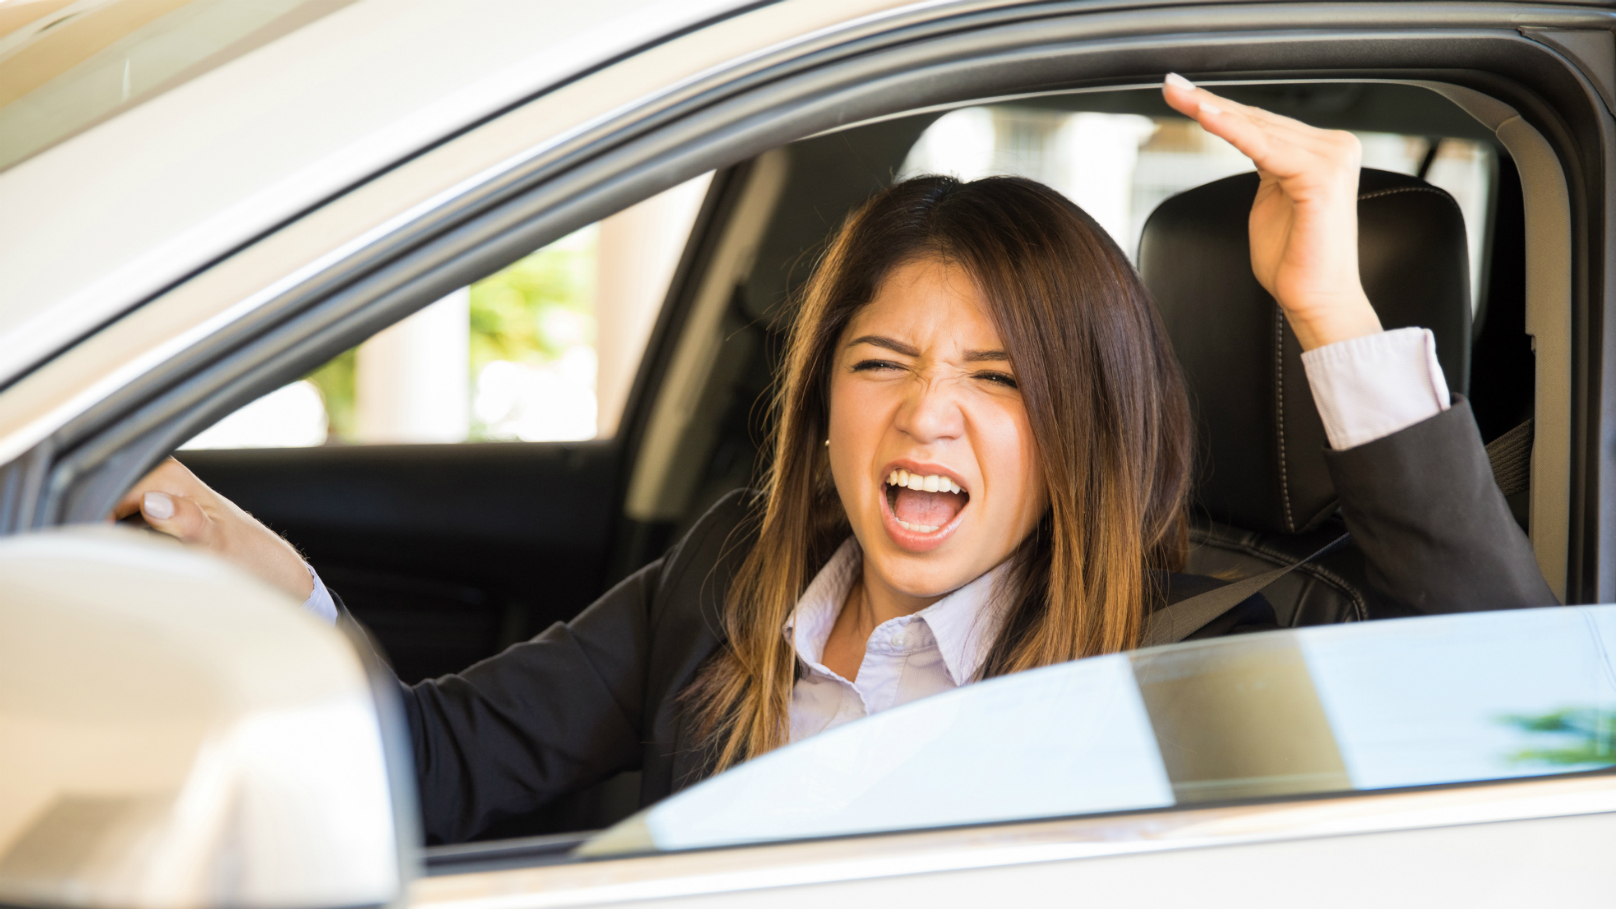 Tips To Deal With Road Rage